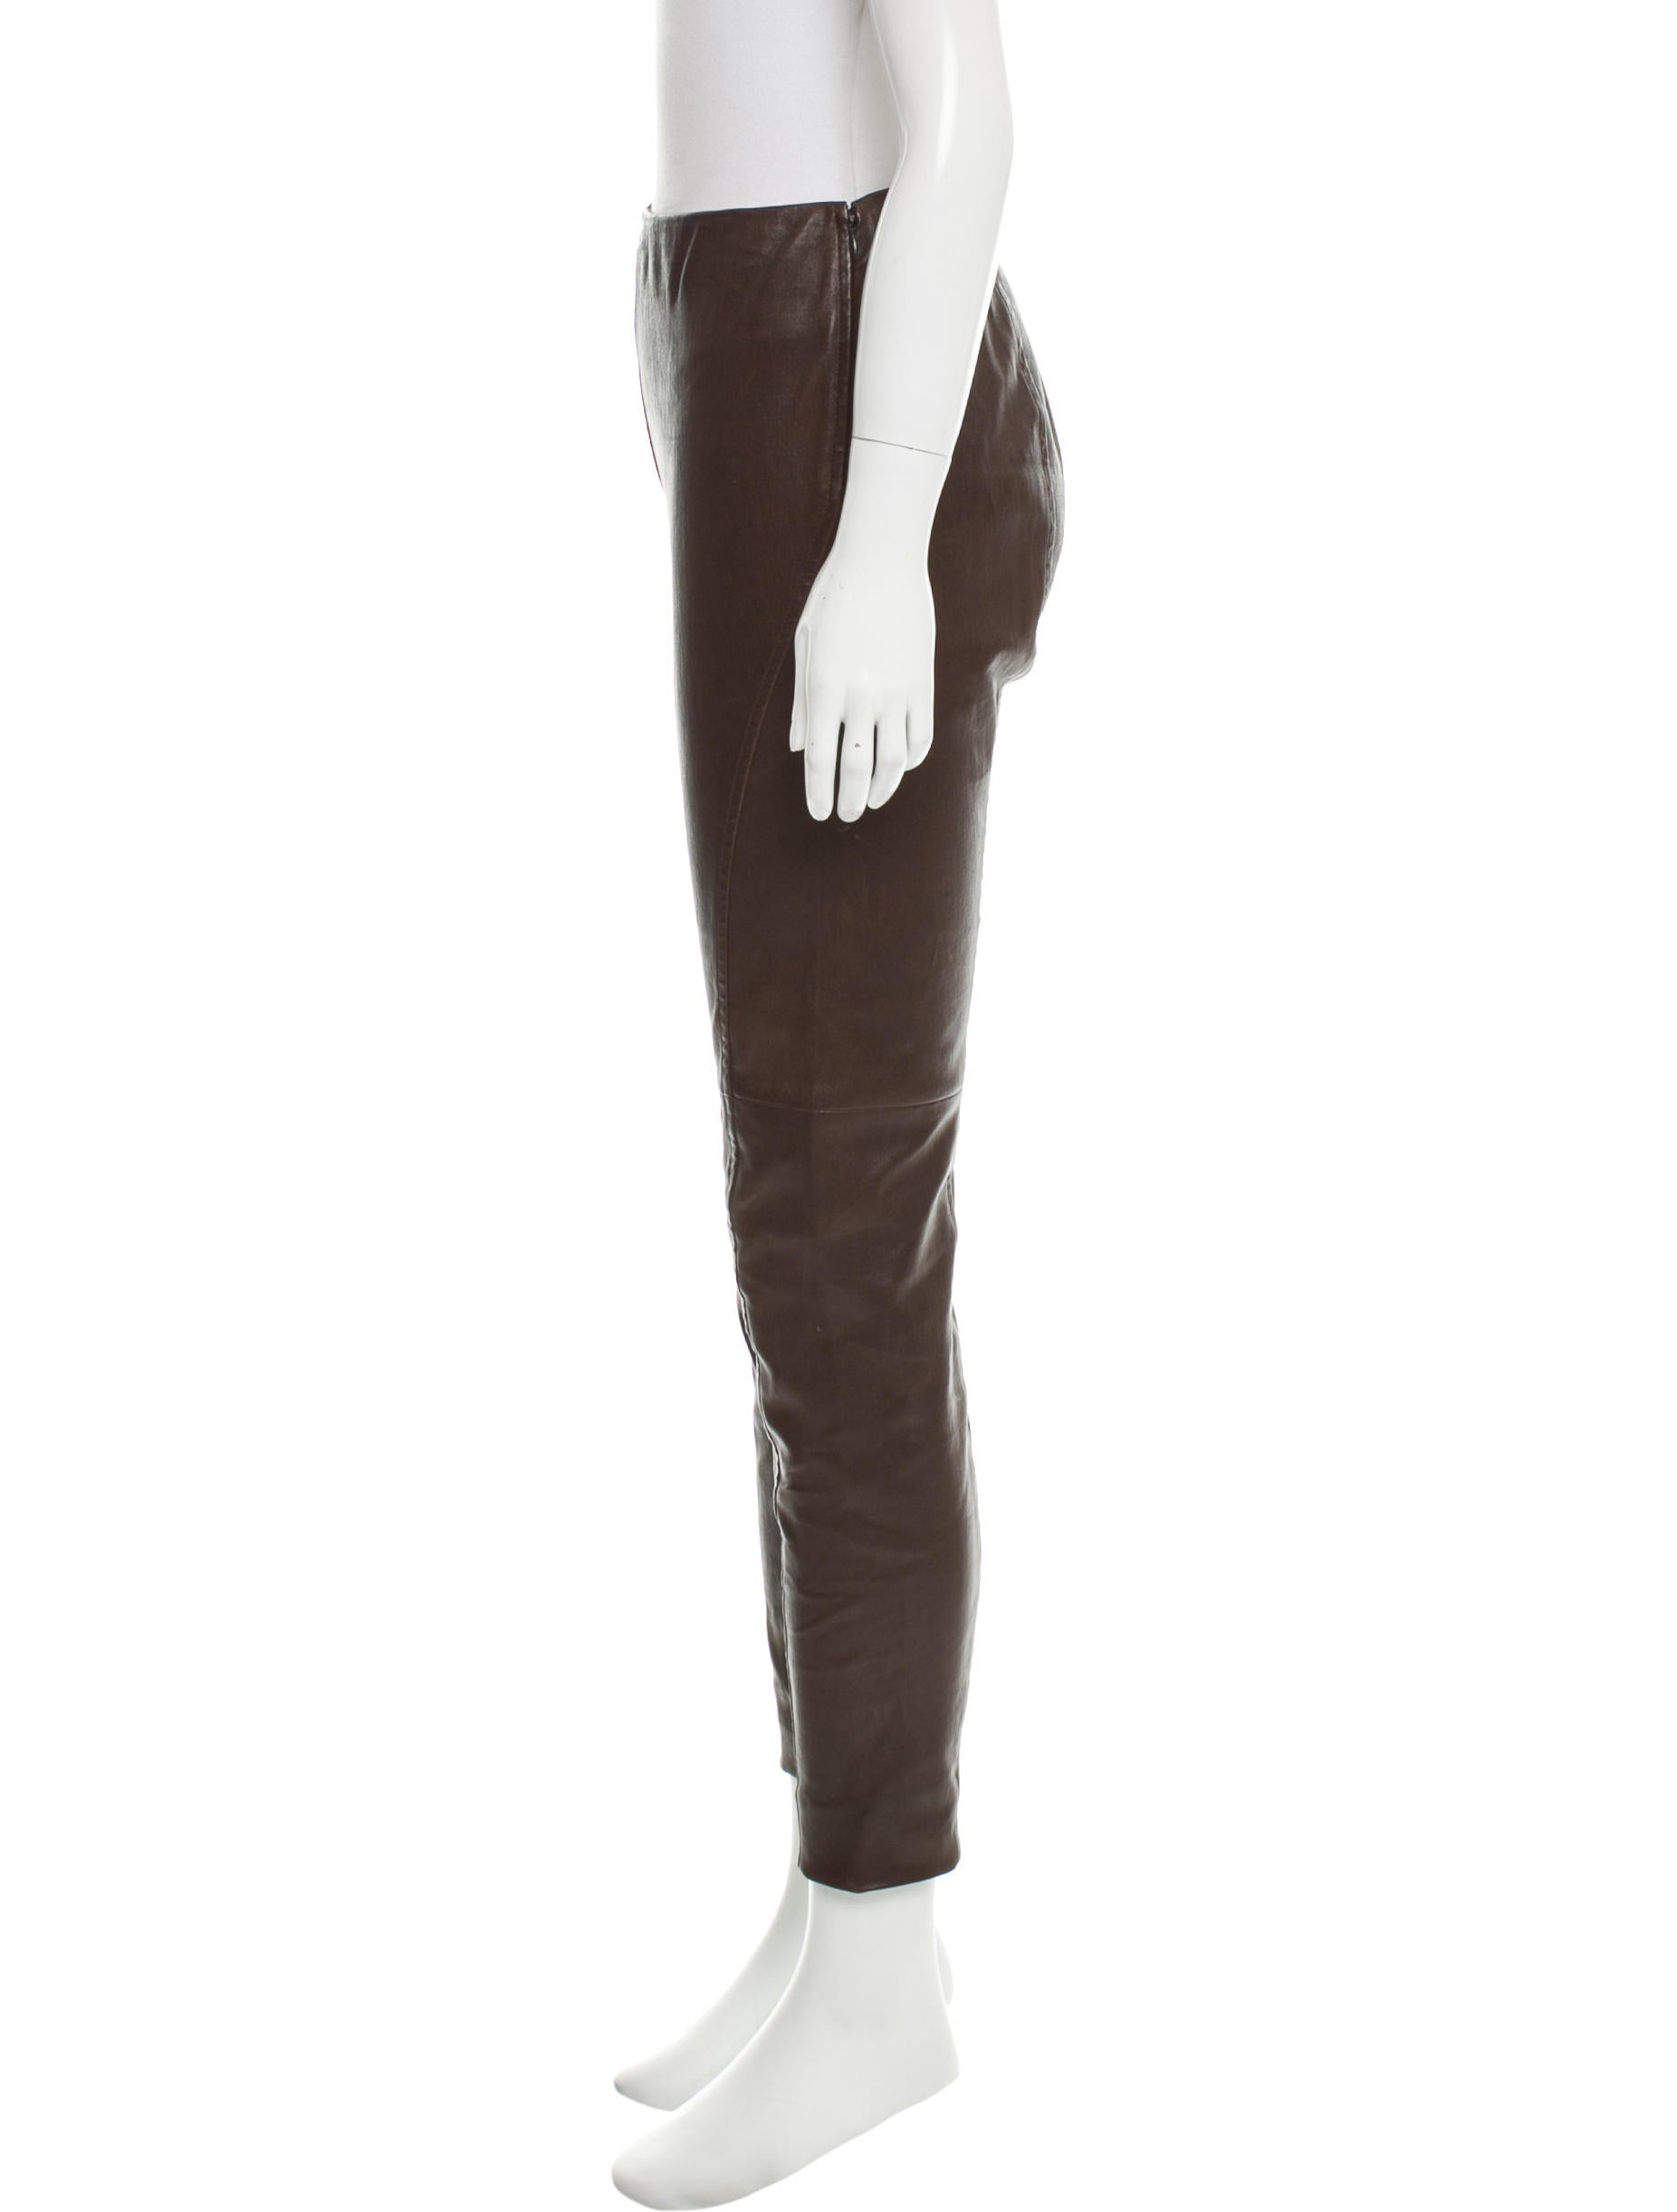 Skinny Pants for Women. Time to take skinny pants to a whole new level. At Free People, skinny pants are a huge love. They go with all our tops and always work to elongate our legs even when we are wearing sneakers.